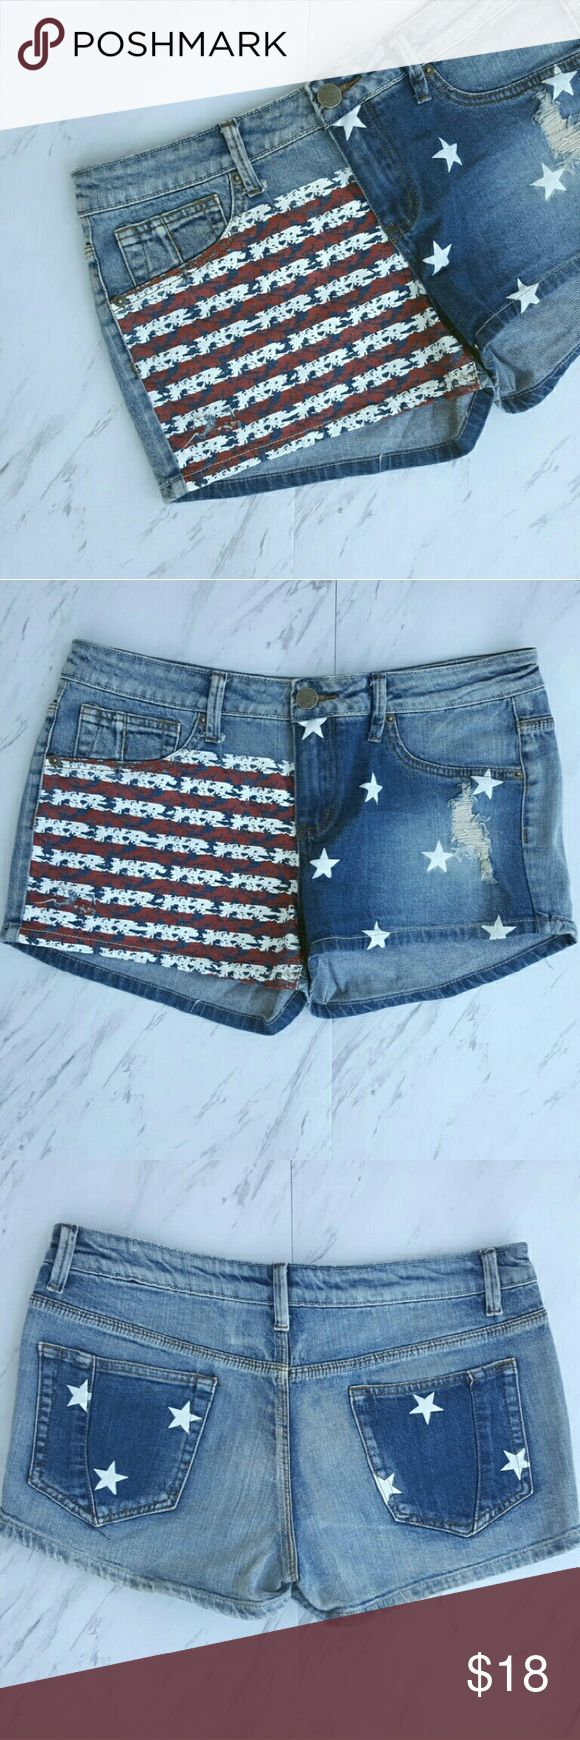 """$8 SALE! American Flag Denim Shorts $8 SALE PRICE IS FIRM UNLESS BUNDLE - NO OFFERS These jeans shorts are way cute, and PERFECT for the 4th of July ! Minimal wear, great condition ! Size 13, measurements: waist about 16"""", rise 9"""", inseam 2.5"""". Shorts Jean Shorts"""